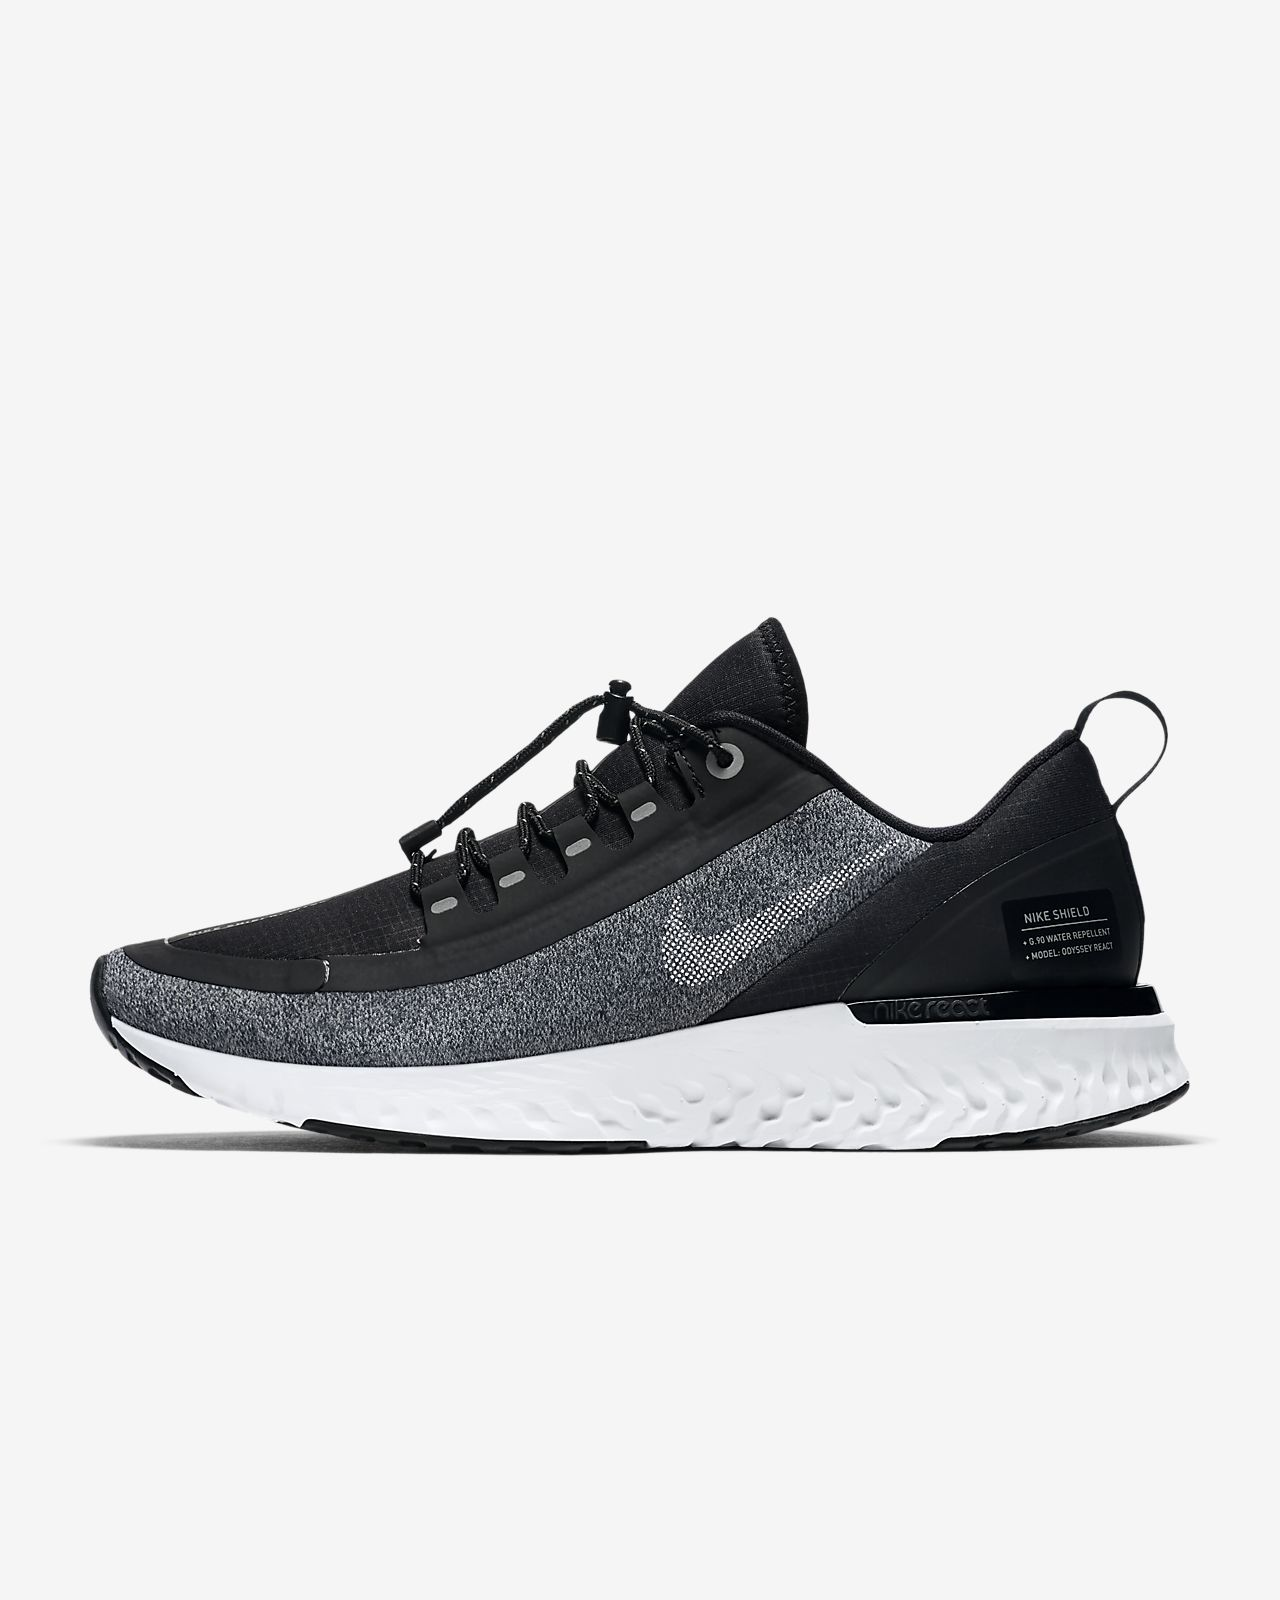 Running Chaussure Odyssey React Shield De Water Pour Nike Repellent rrgqt5w